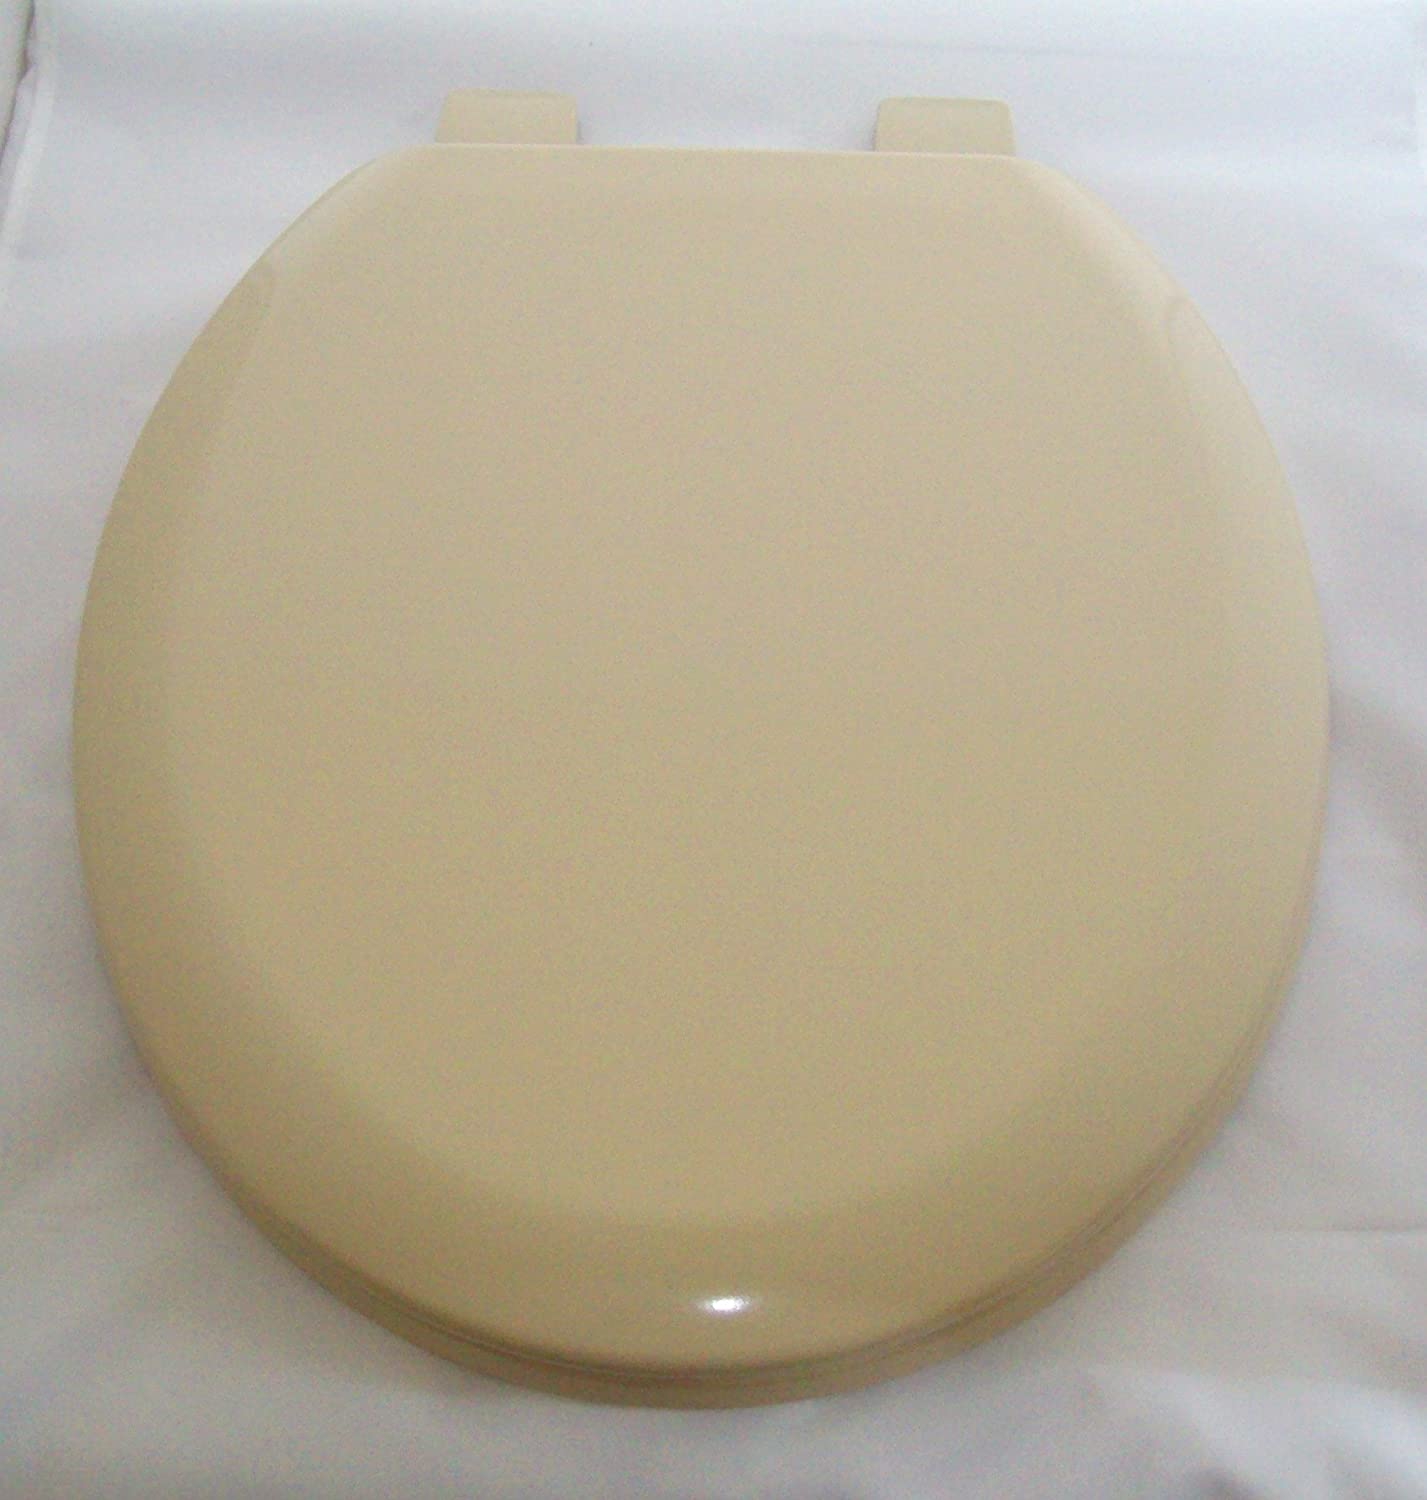 Bemis 5000 Champagne Coloured Toilet seat: Amazon.co.uk: Kitchen ...